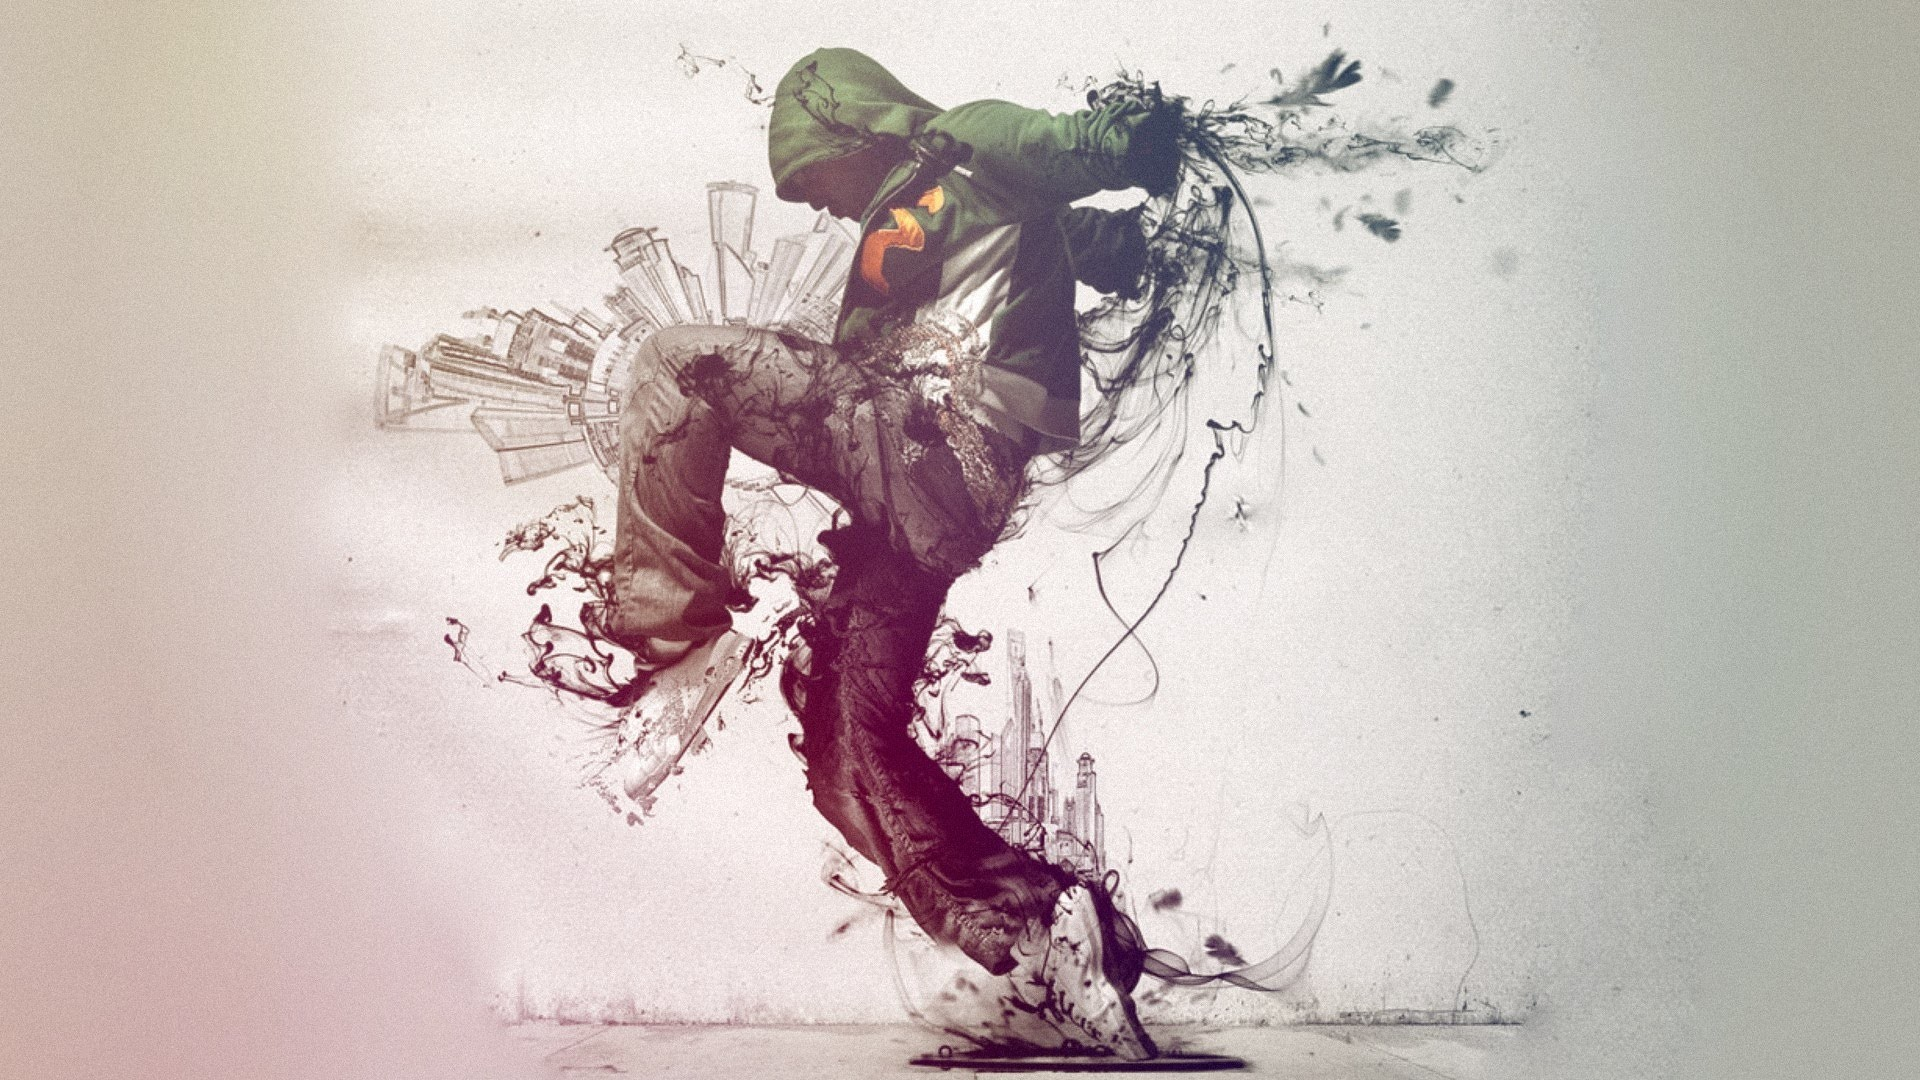 Cool music backgrounds 57 images - Wallpaper artist music ...